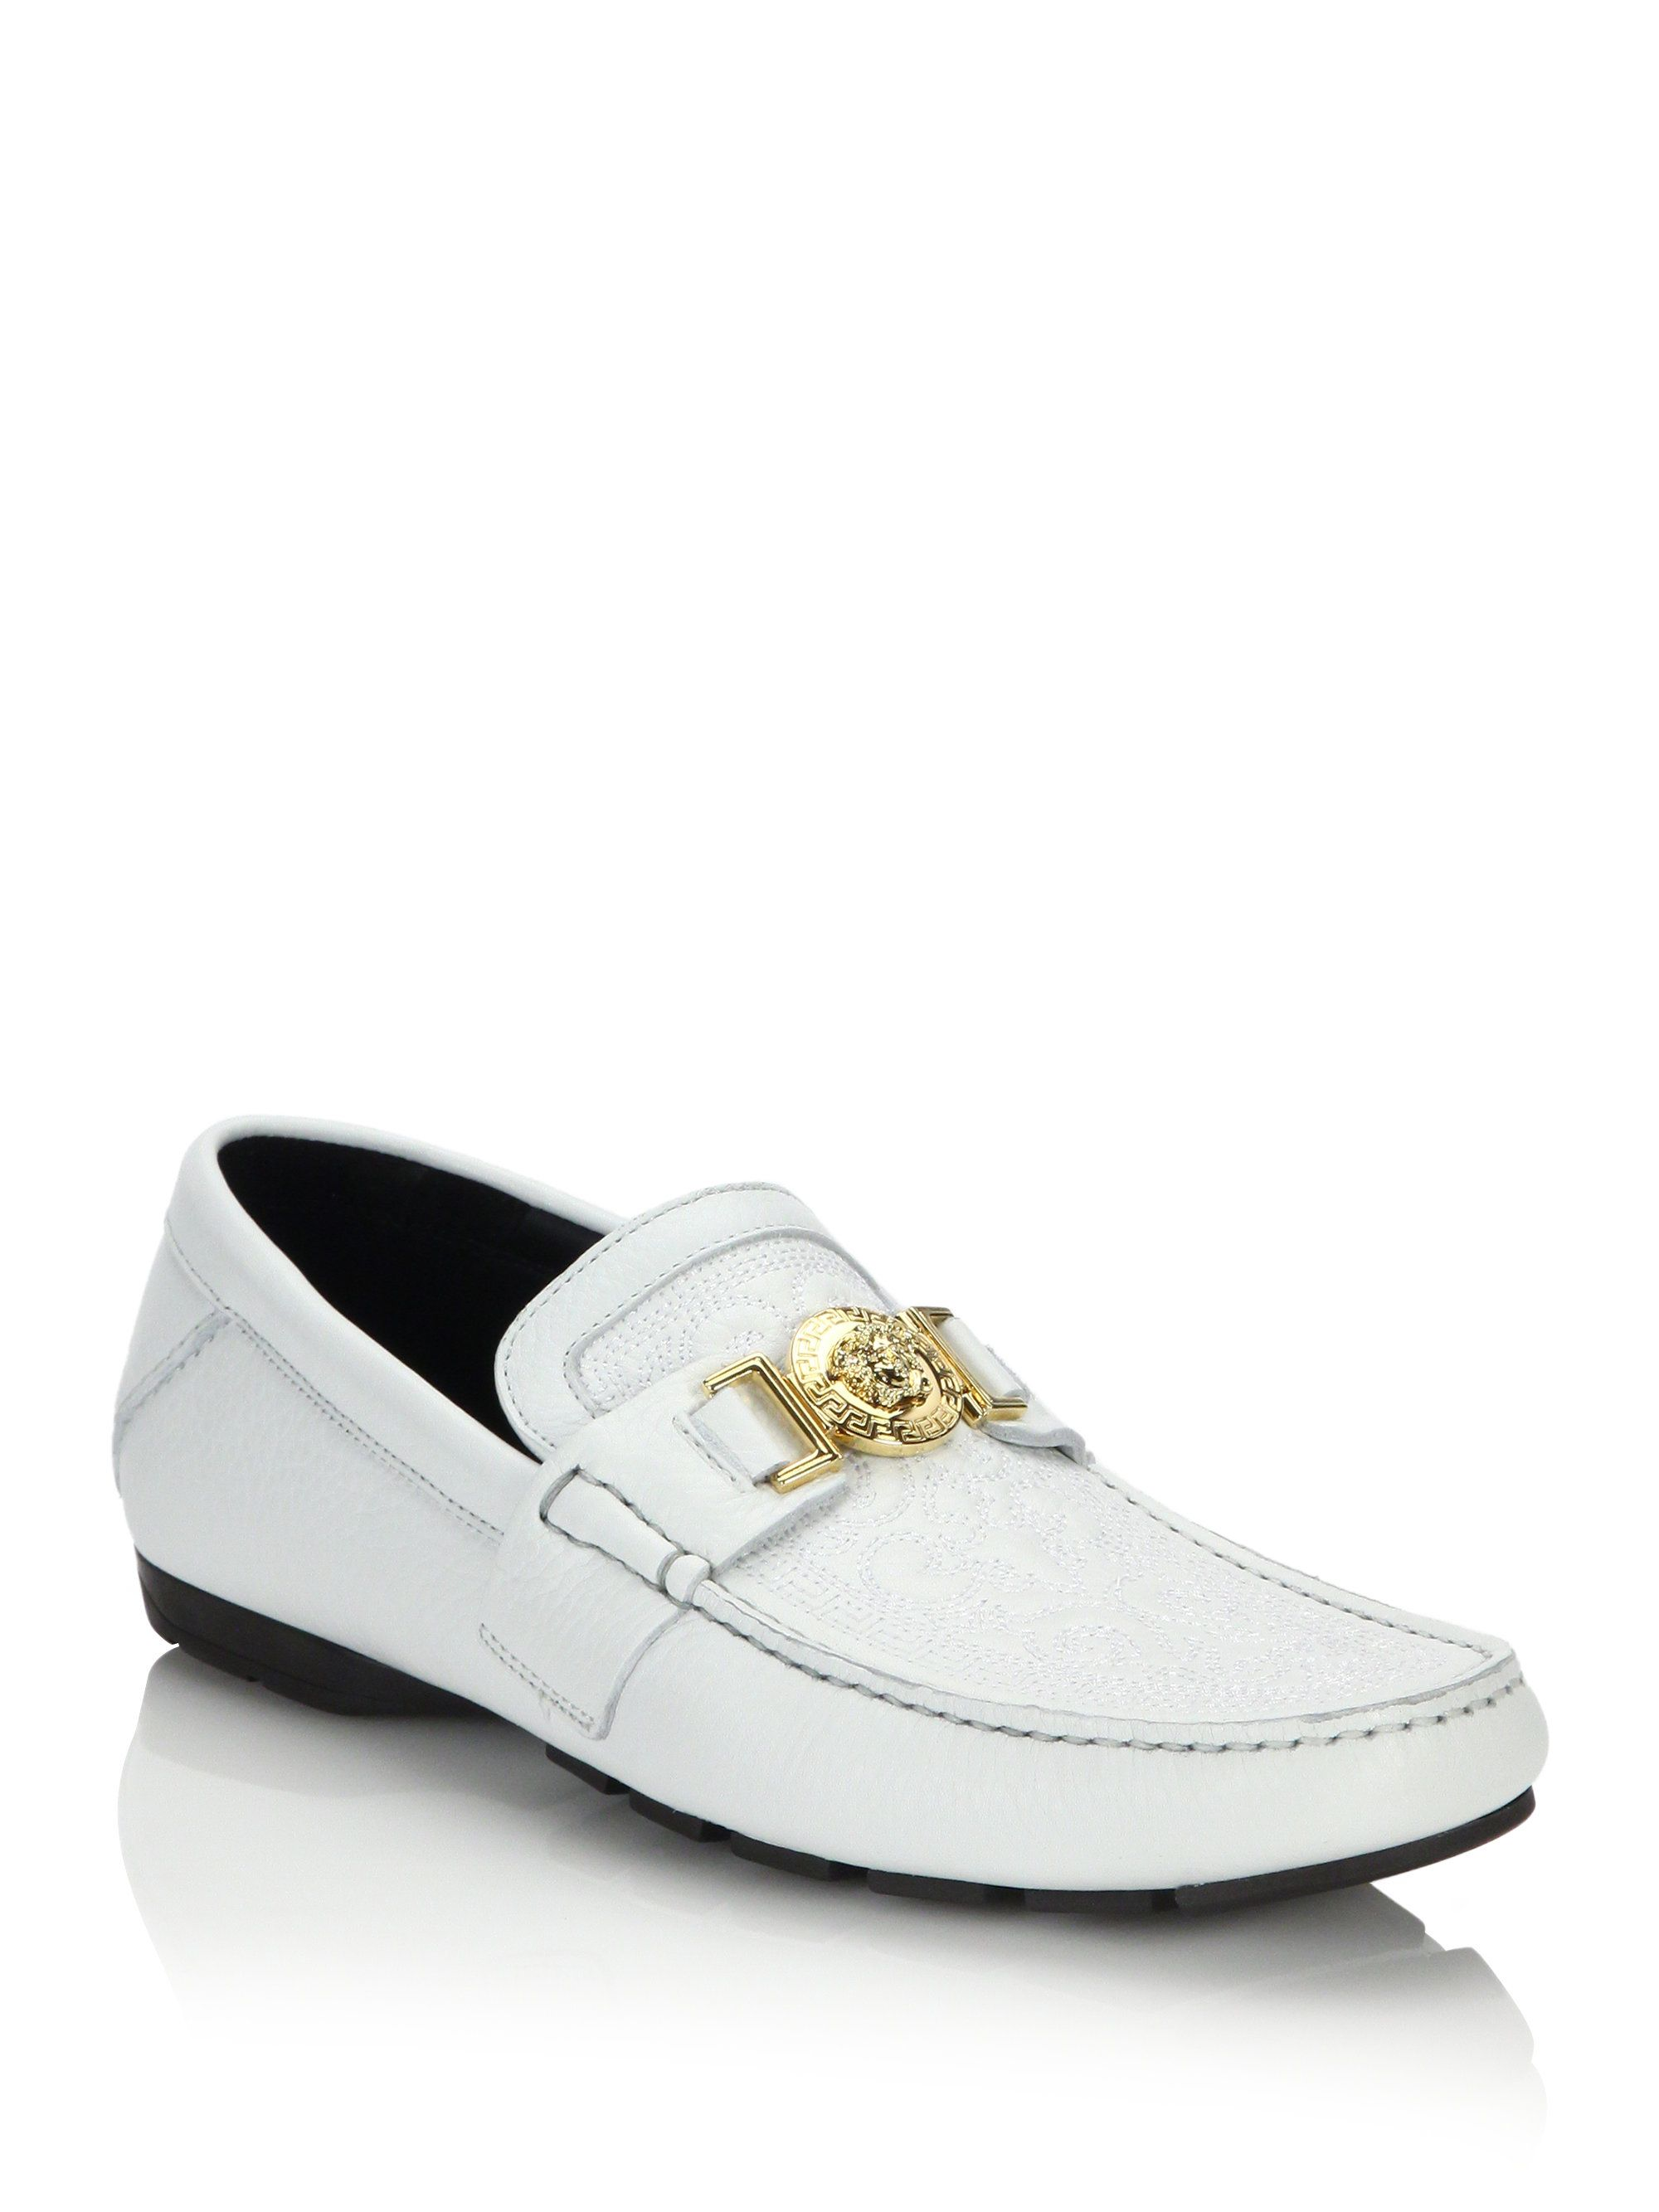 524ff7768a Versace Men Shoes White with Gold | Versace Vanitas Stitched Leather Loafers  in White for Men (white-gold)